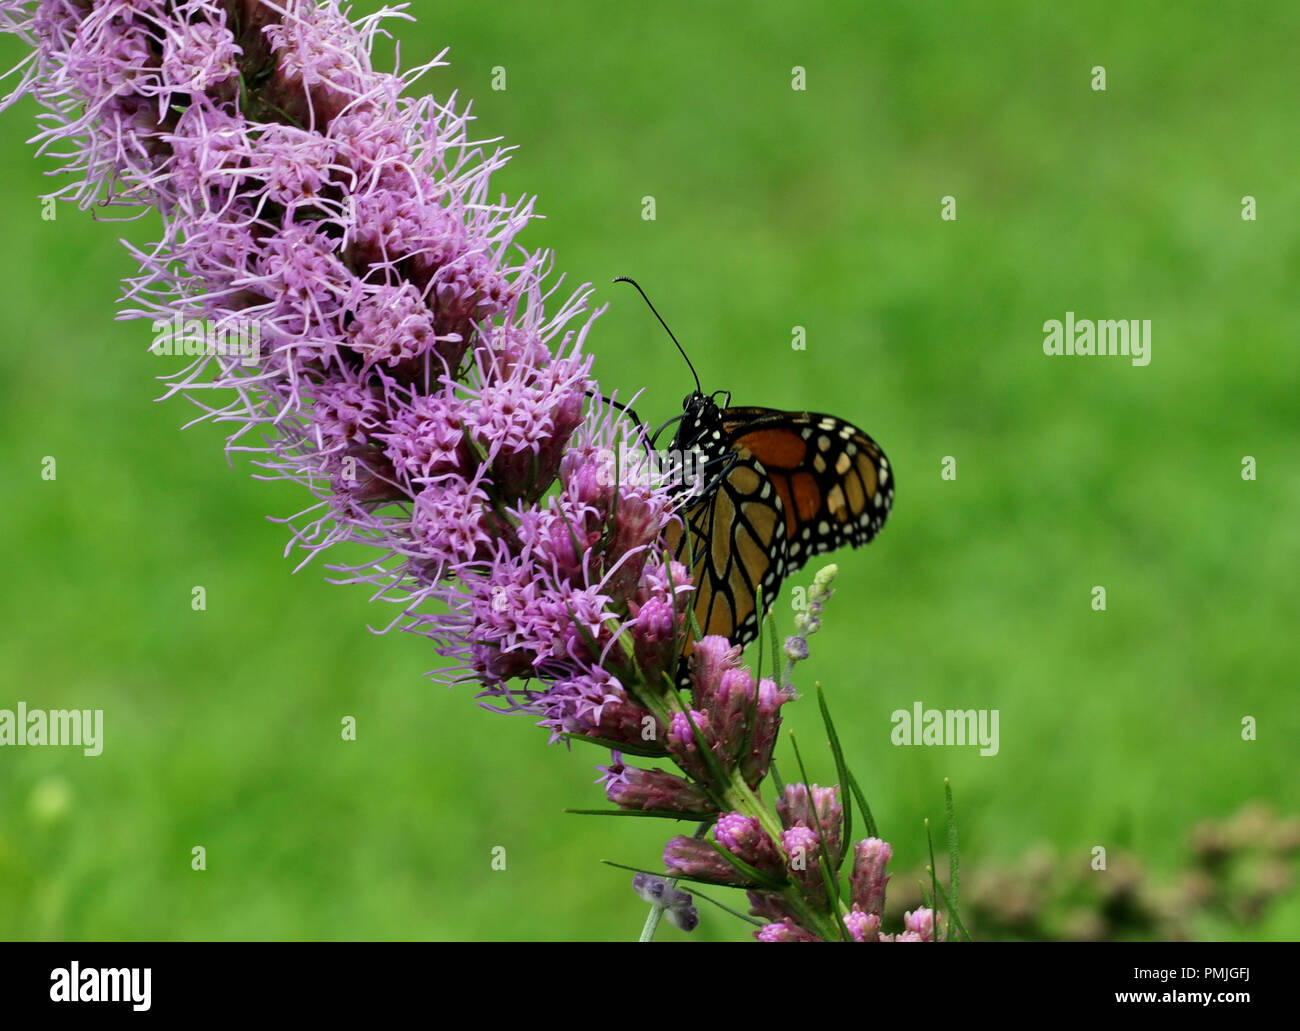 A Monarch butterfly (Danaus plexippus), also known as the milkweed butterfly, feeding in a garden on blazing star (Liatris spicata) Stock Photo